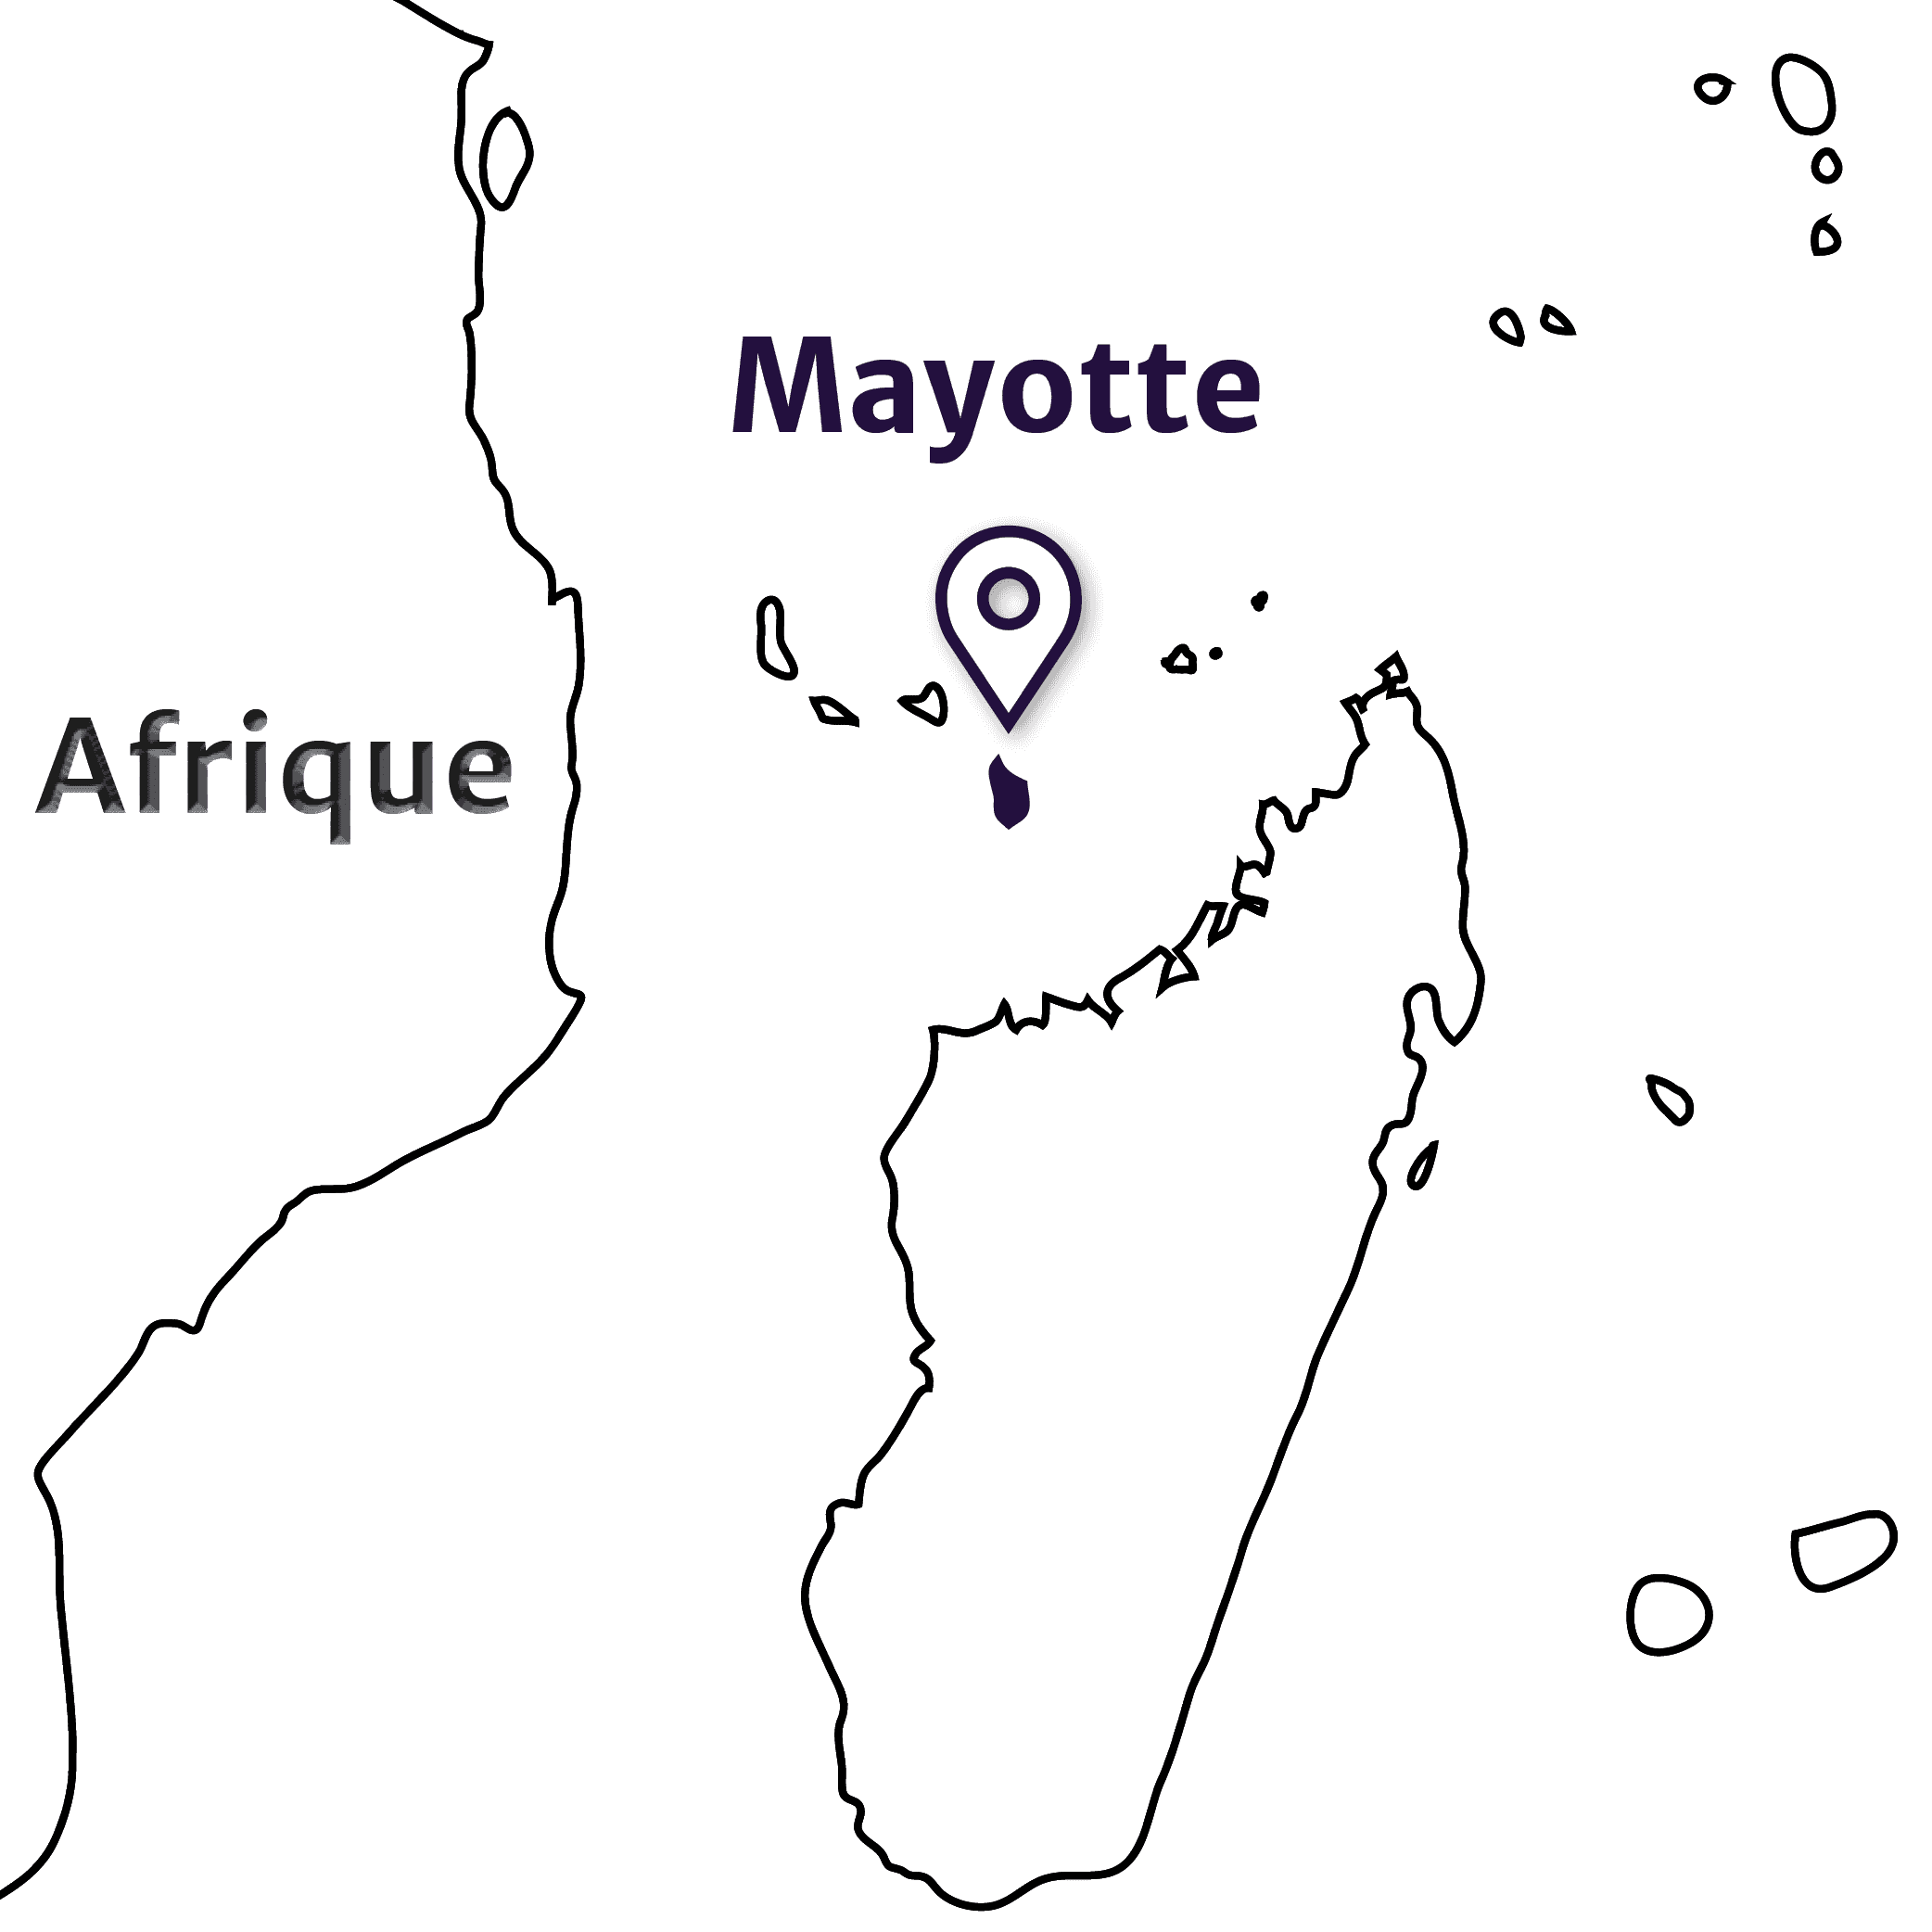 Mayotte - Carte localisation Mayotte